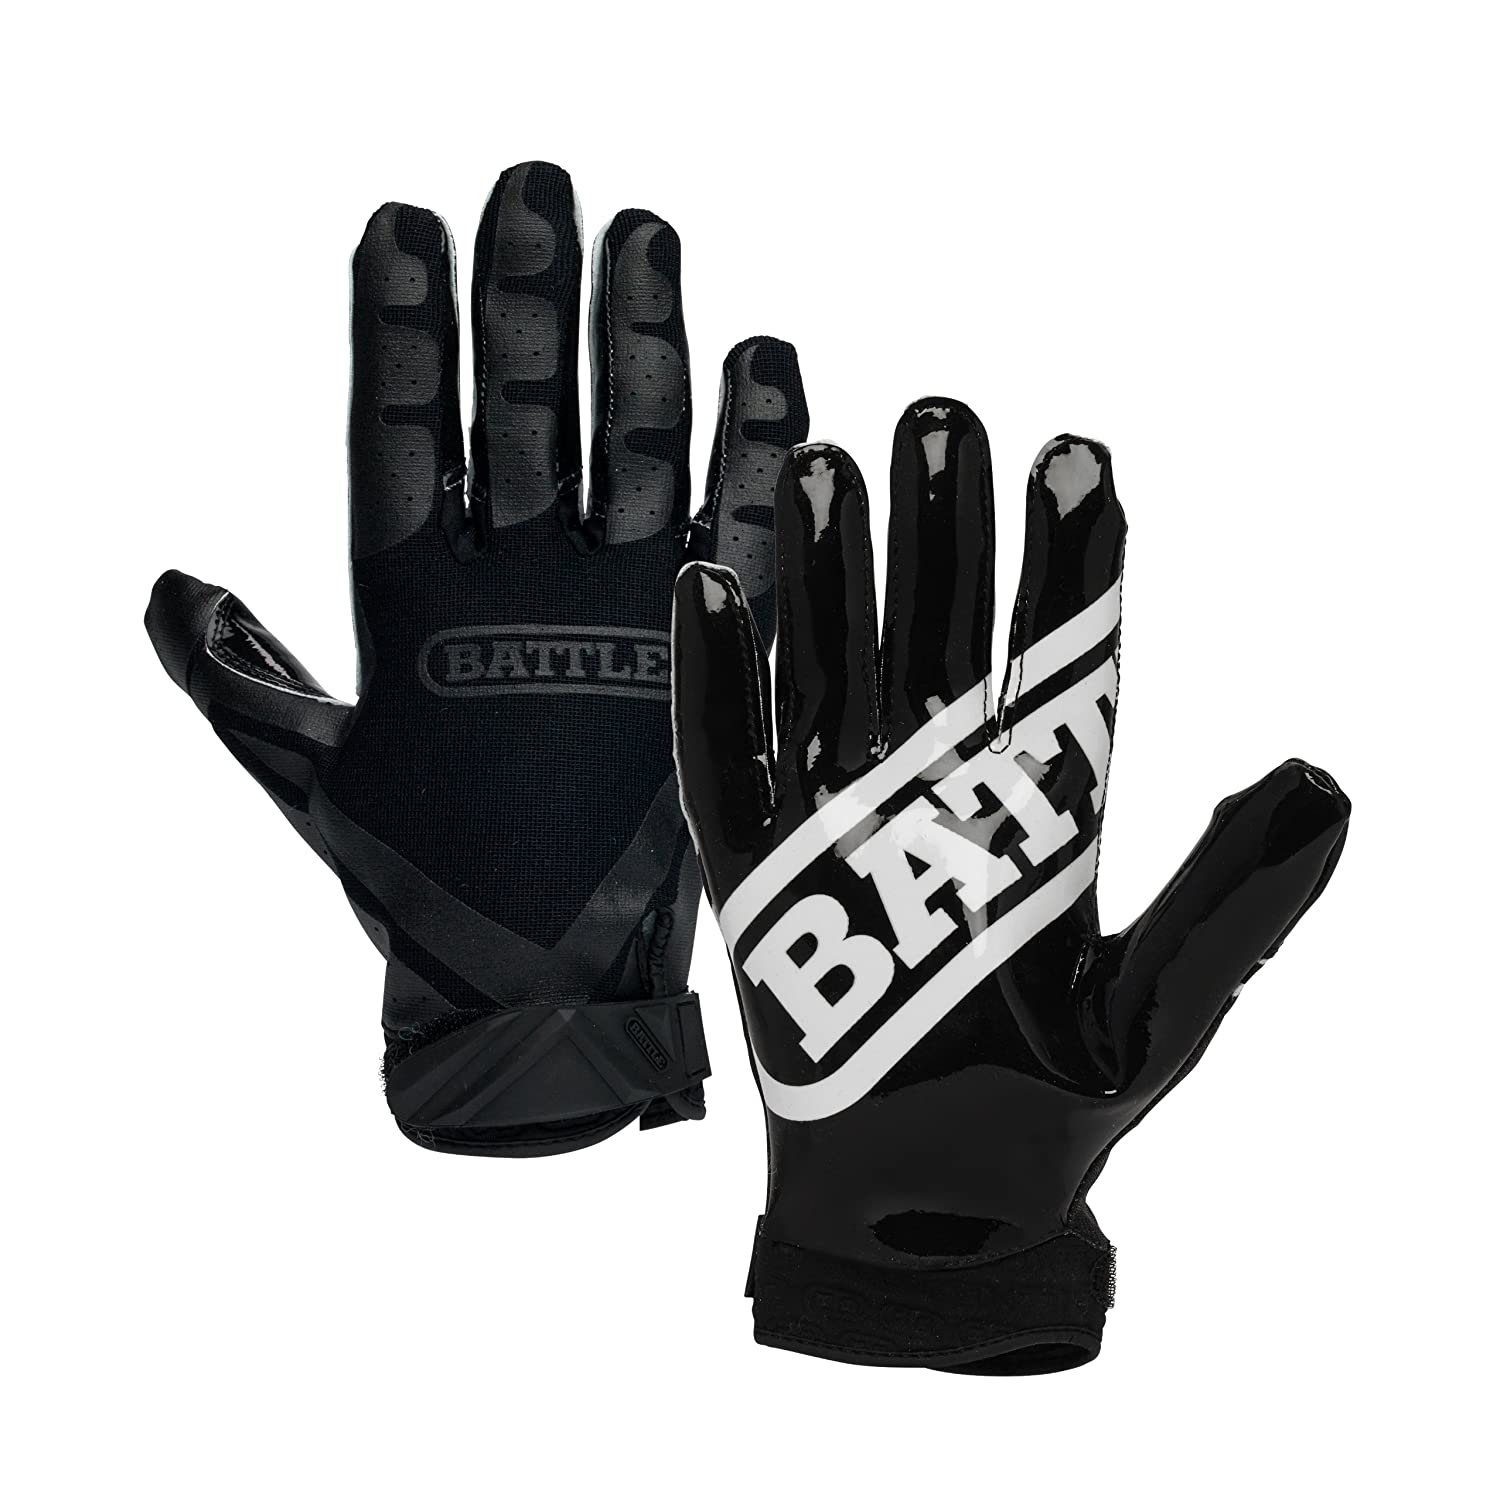 Battle Double Threat Football Gloves Ultra Tack Sticky Palm Receivers Gloves Pro Style Receiver Gloves Youth